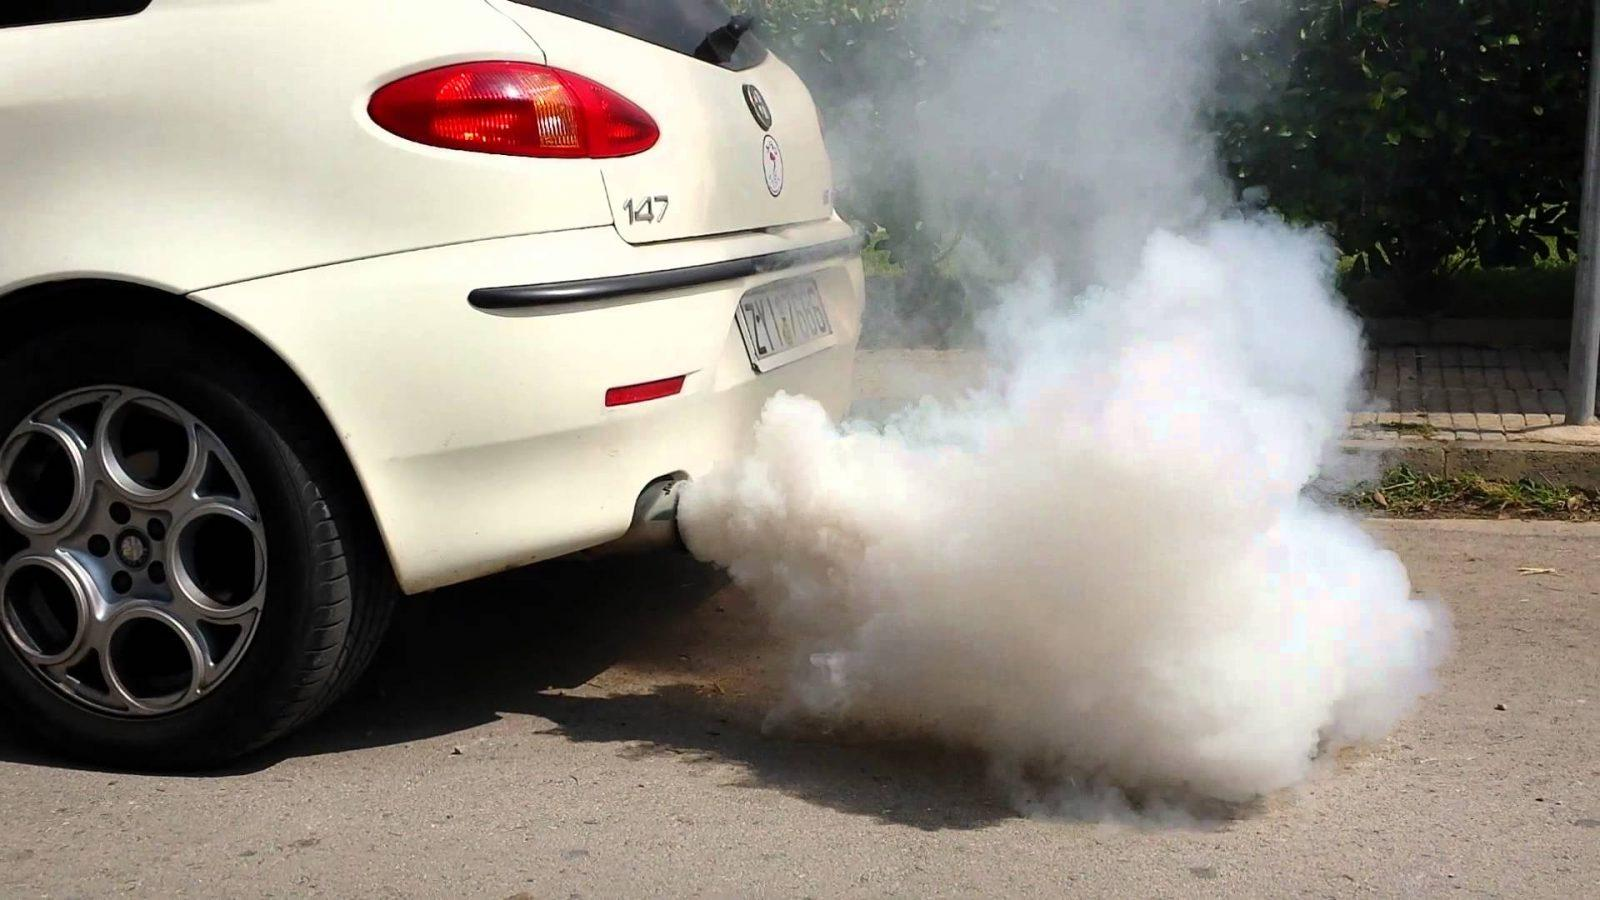 8 Reasons Your Car Is Making Grinding Noise When Braking From 2008 Yaris Fuse Box White Smoke Exhaust Main Causes And How To Fix